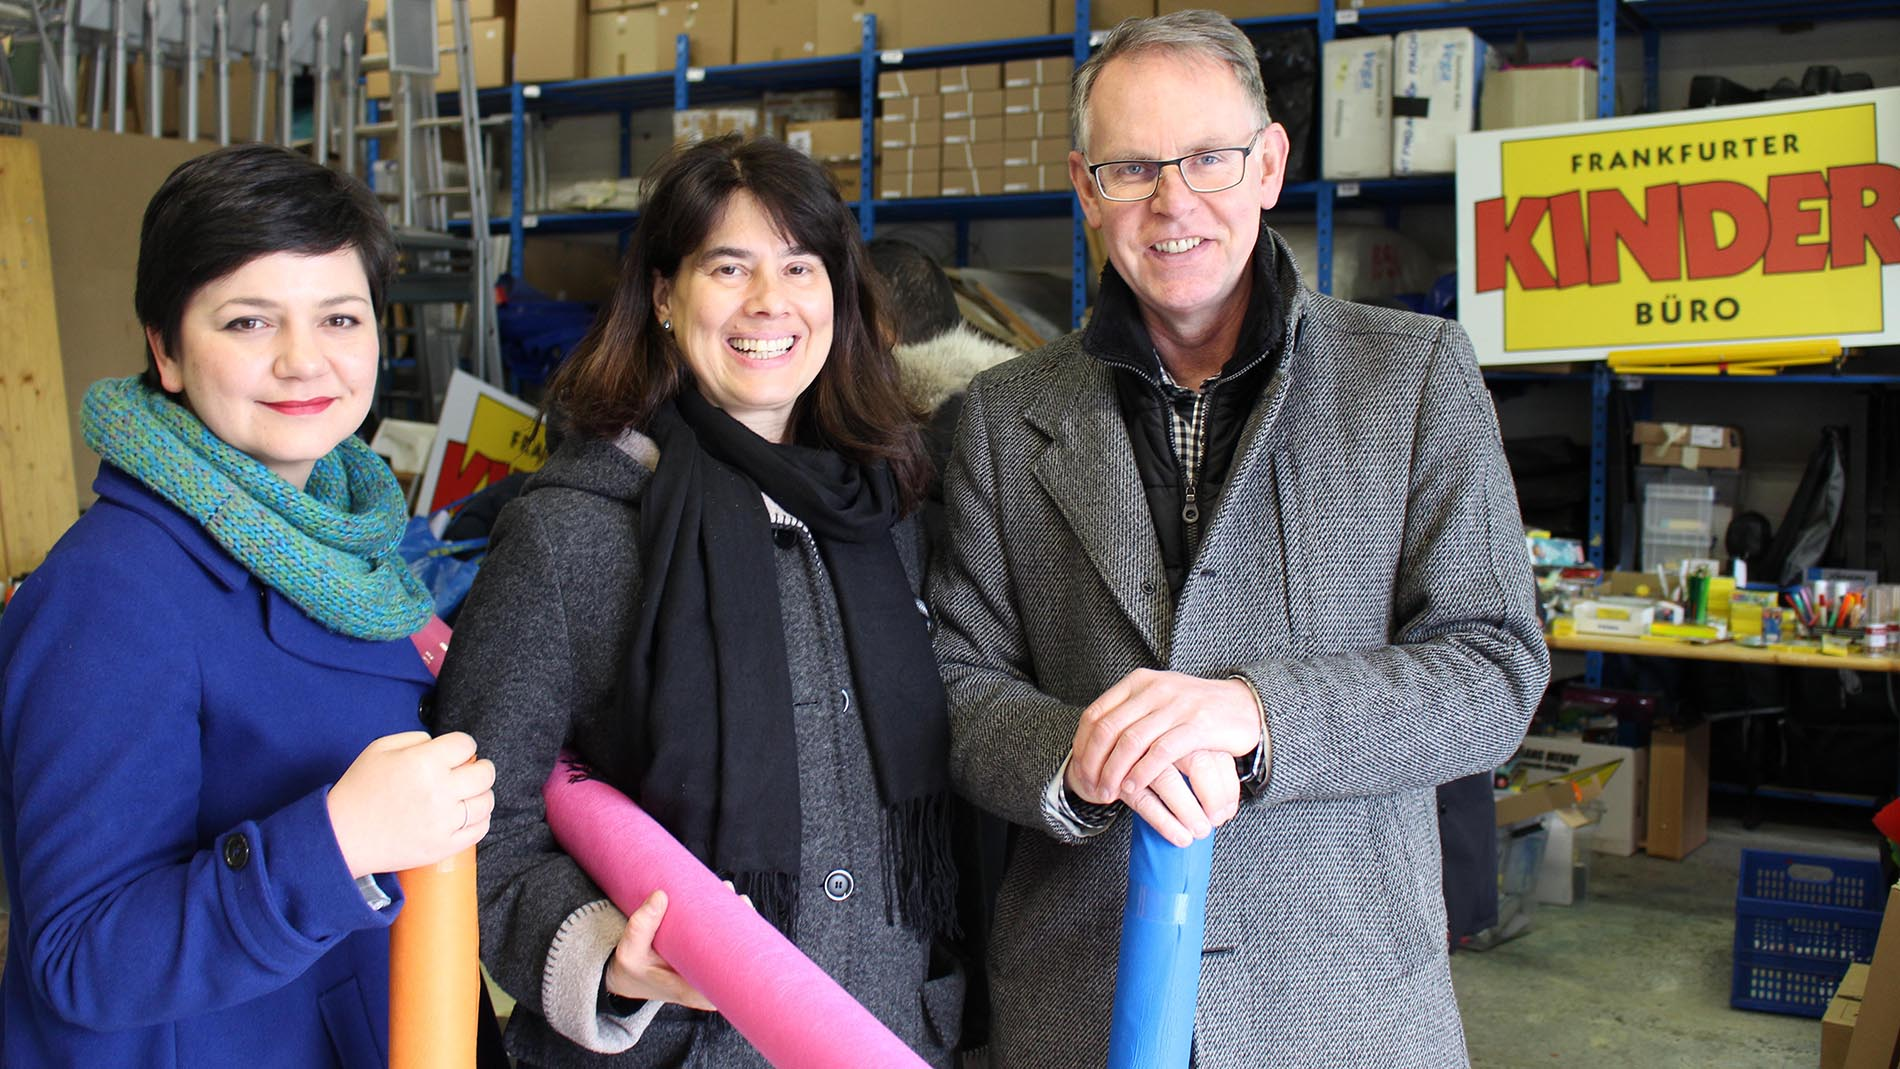 Margit Herberth, Director of Consumer Marketing and Communication, Messe Frankfurt, Madeleine Michaelis, Project Leader, Frankfurter Kinderbüro, and Michael Reichhold, Creativeworld Director, Messe Frankfurt, at the distribution of donations in the Frankfurter Kinderbüro storeroom.